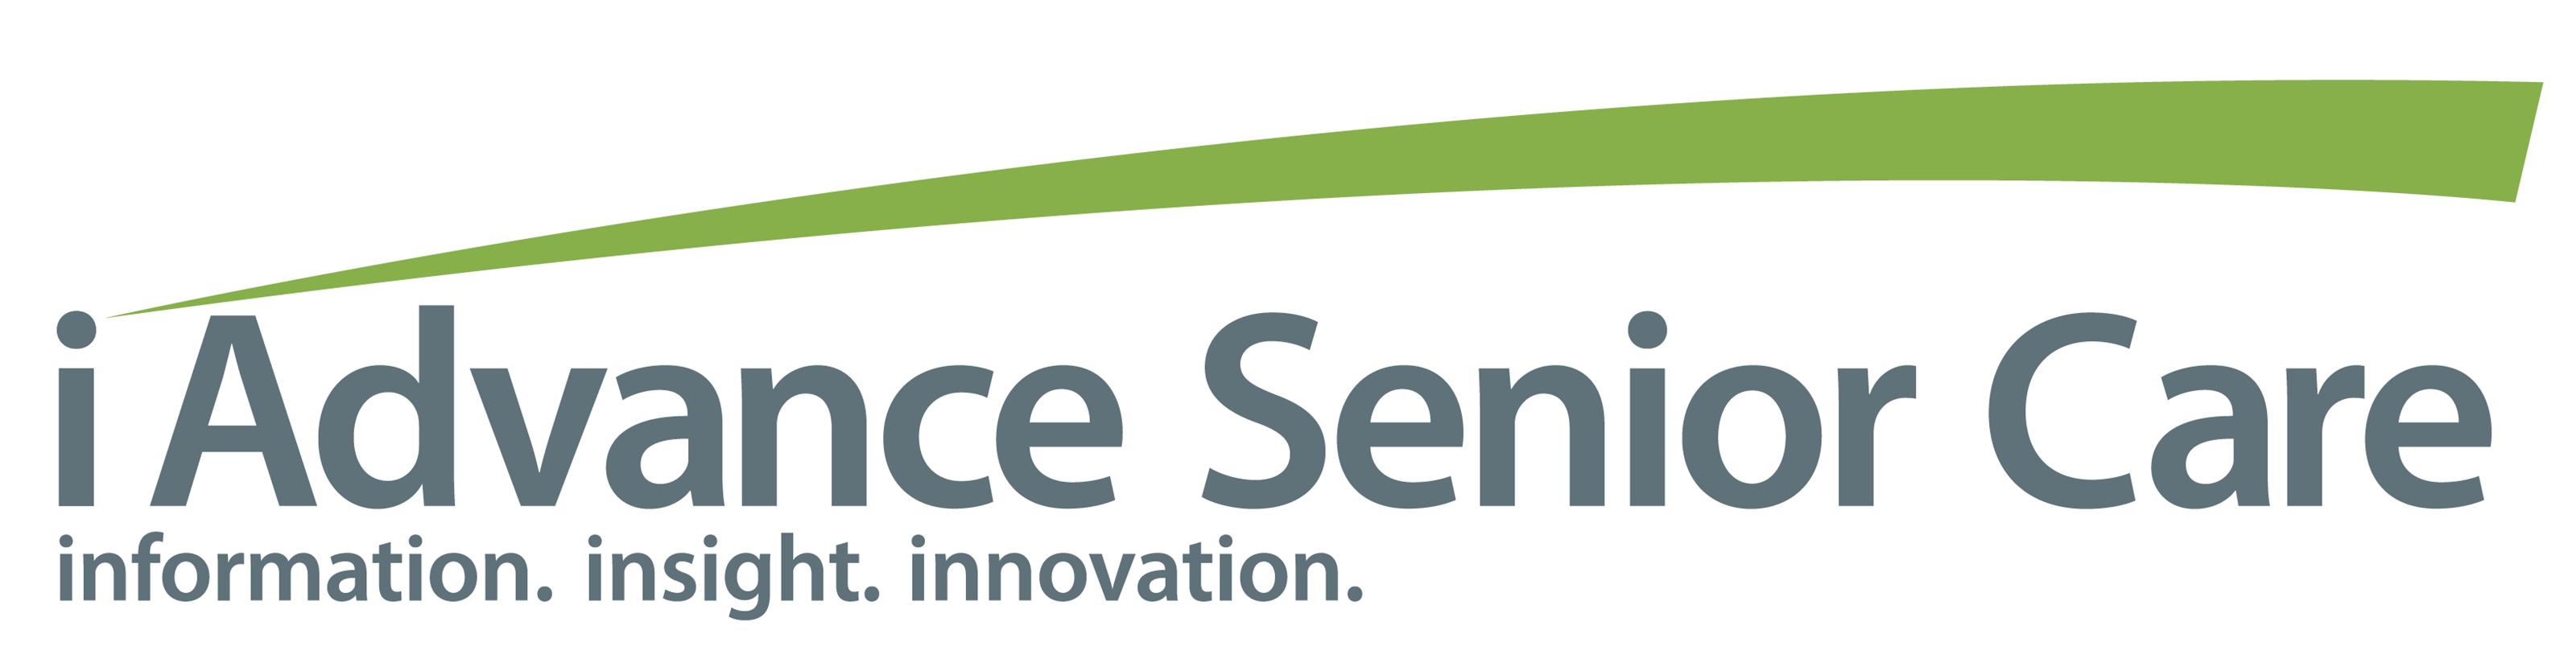 i Advance Senior Care Logo